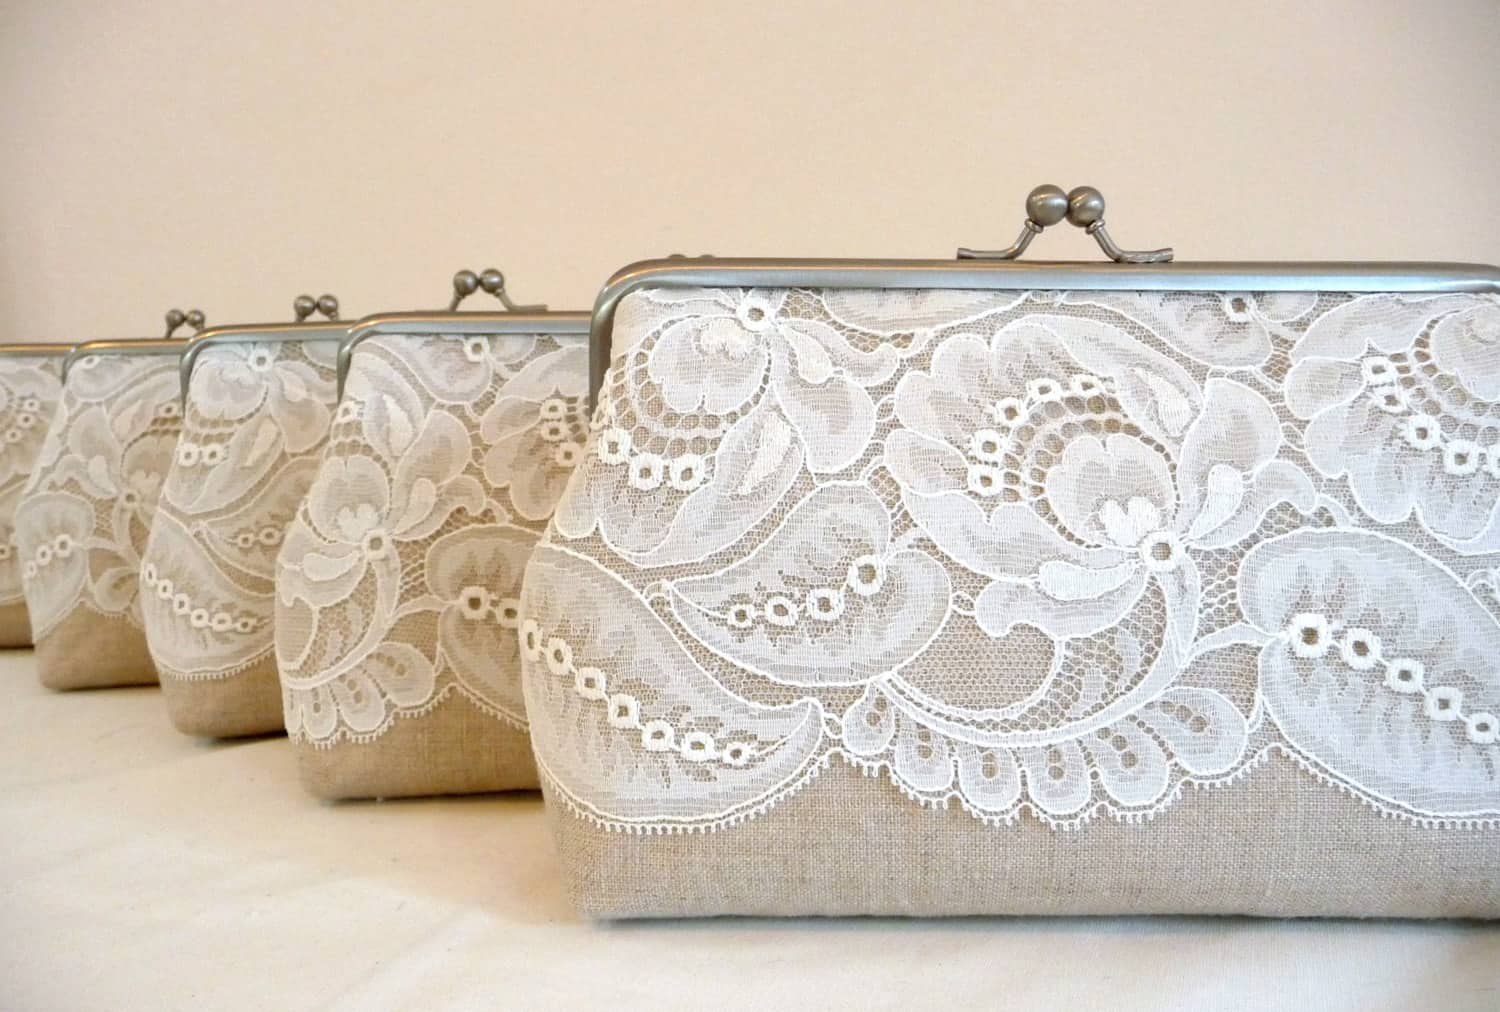 Vintage lace bridesmaid clutch gift